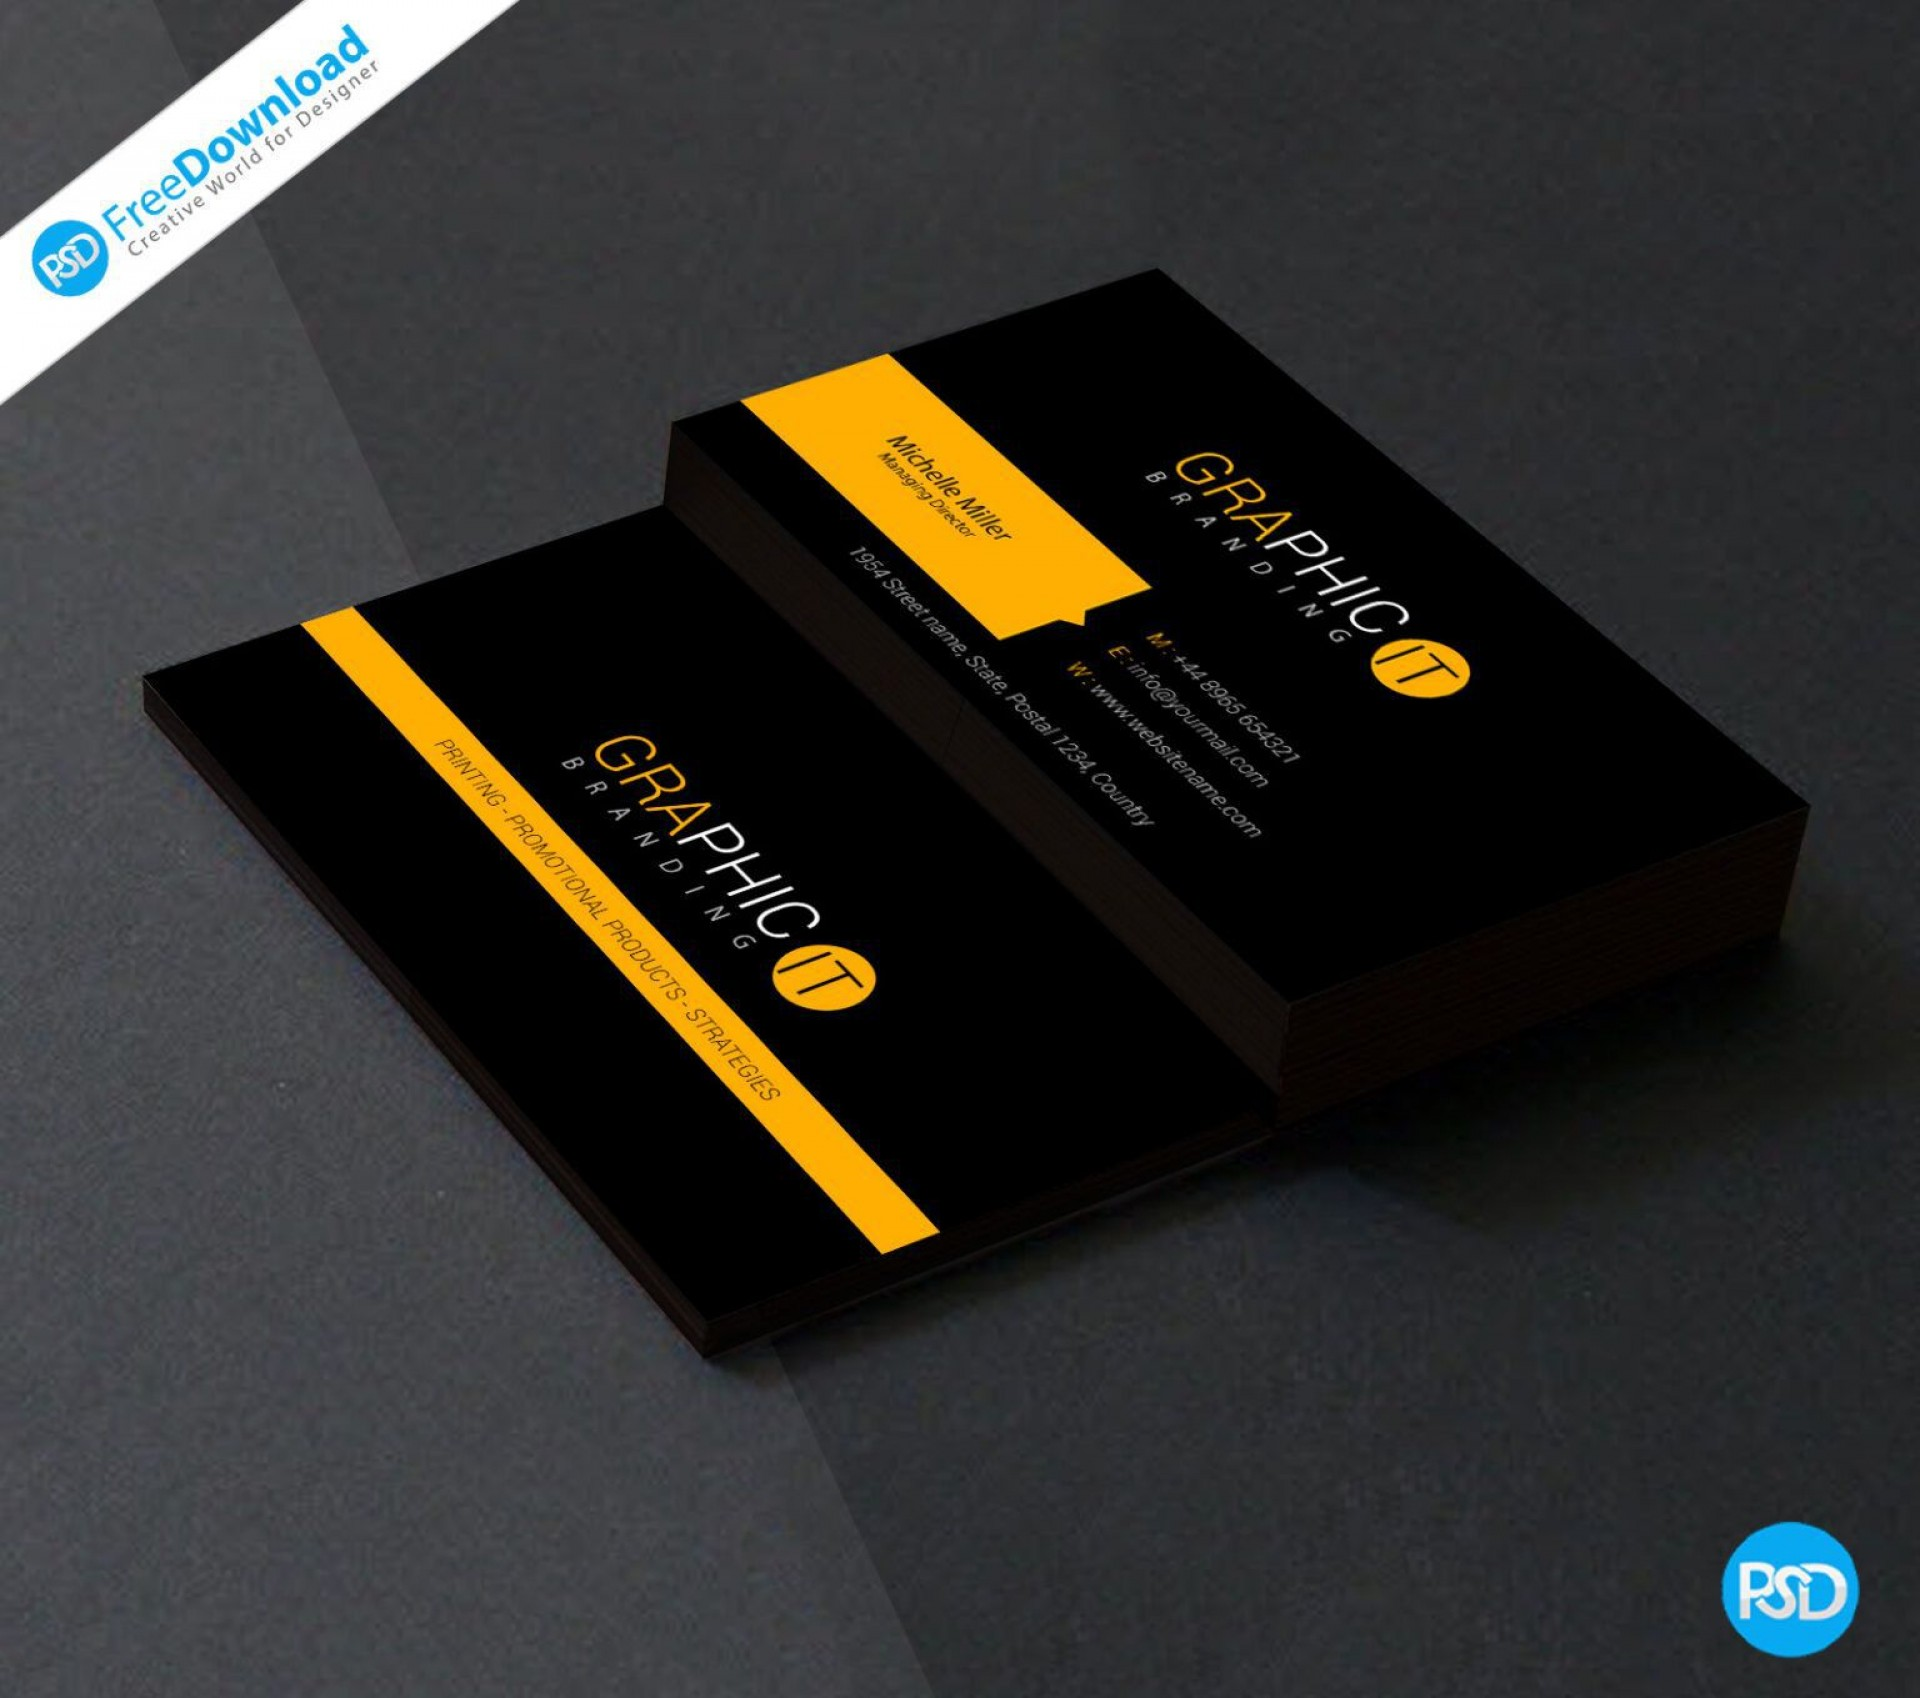 005 Awesome Blank Busines Card Template Psd Free Download Concept  Photoshop1920